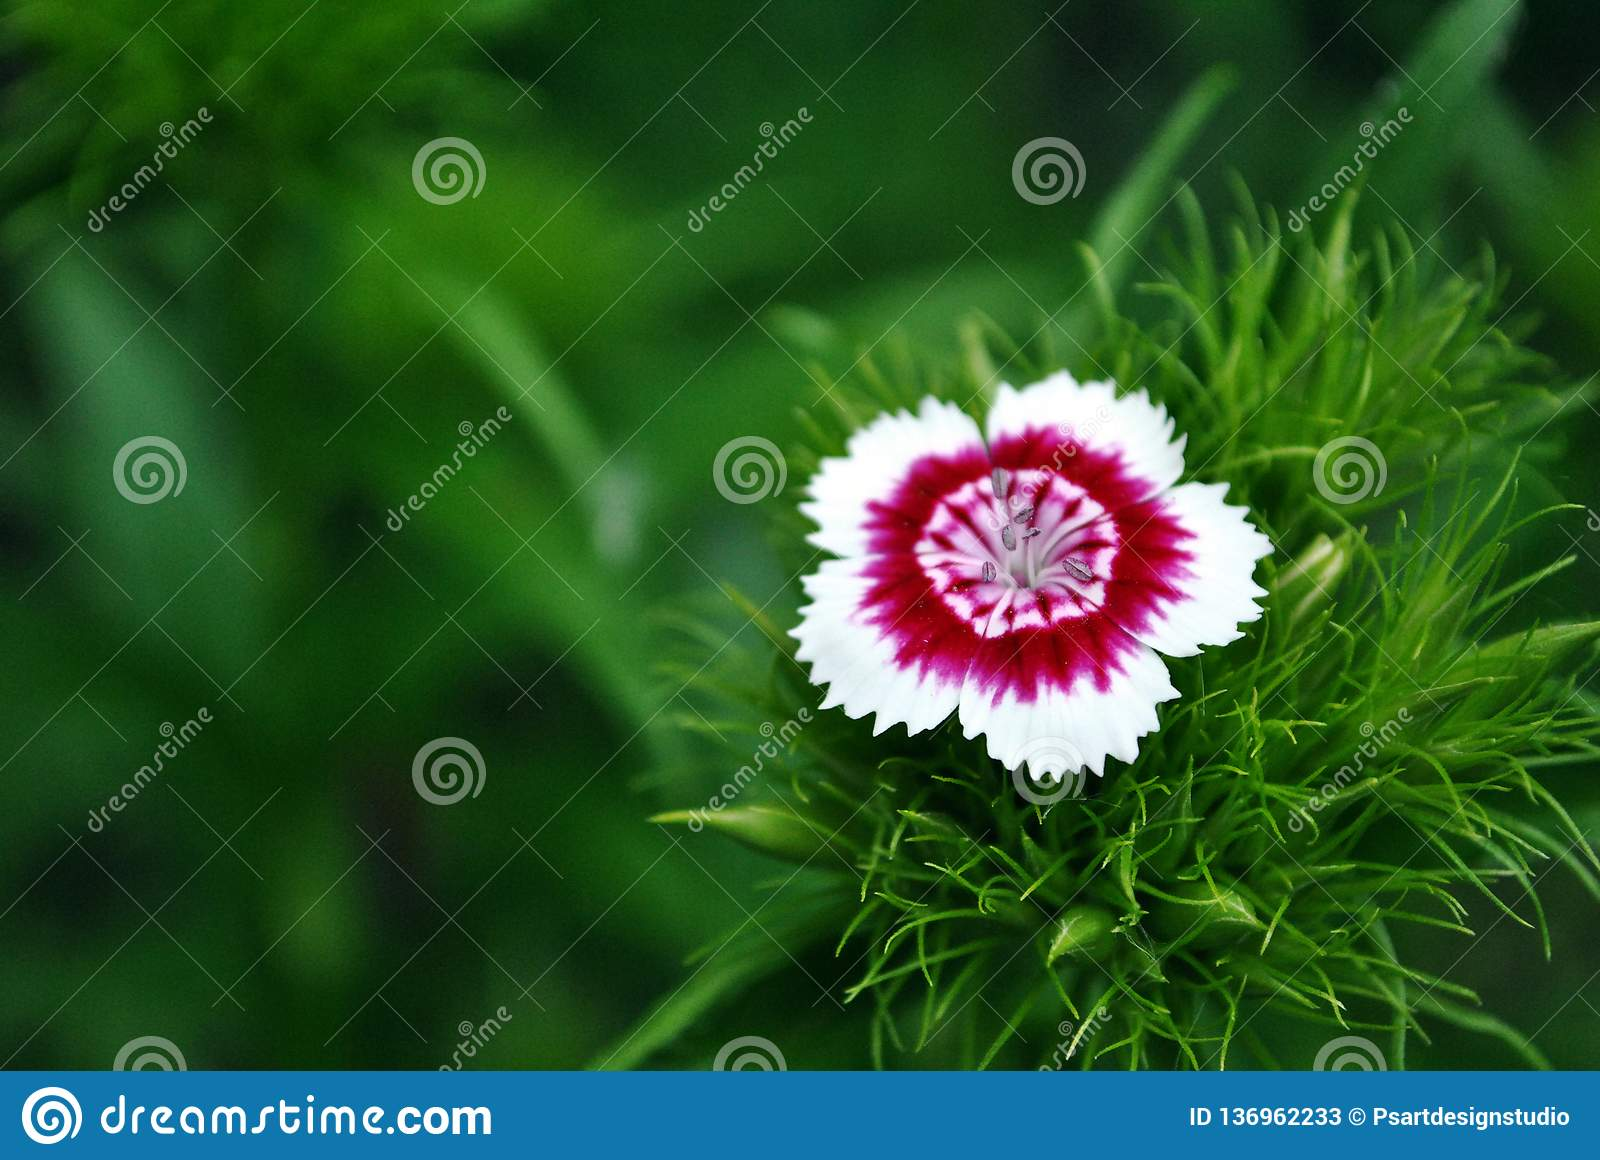 Dianthus barbatus Sweet William one flower blooming, green soft background